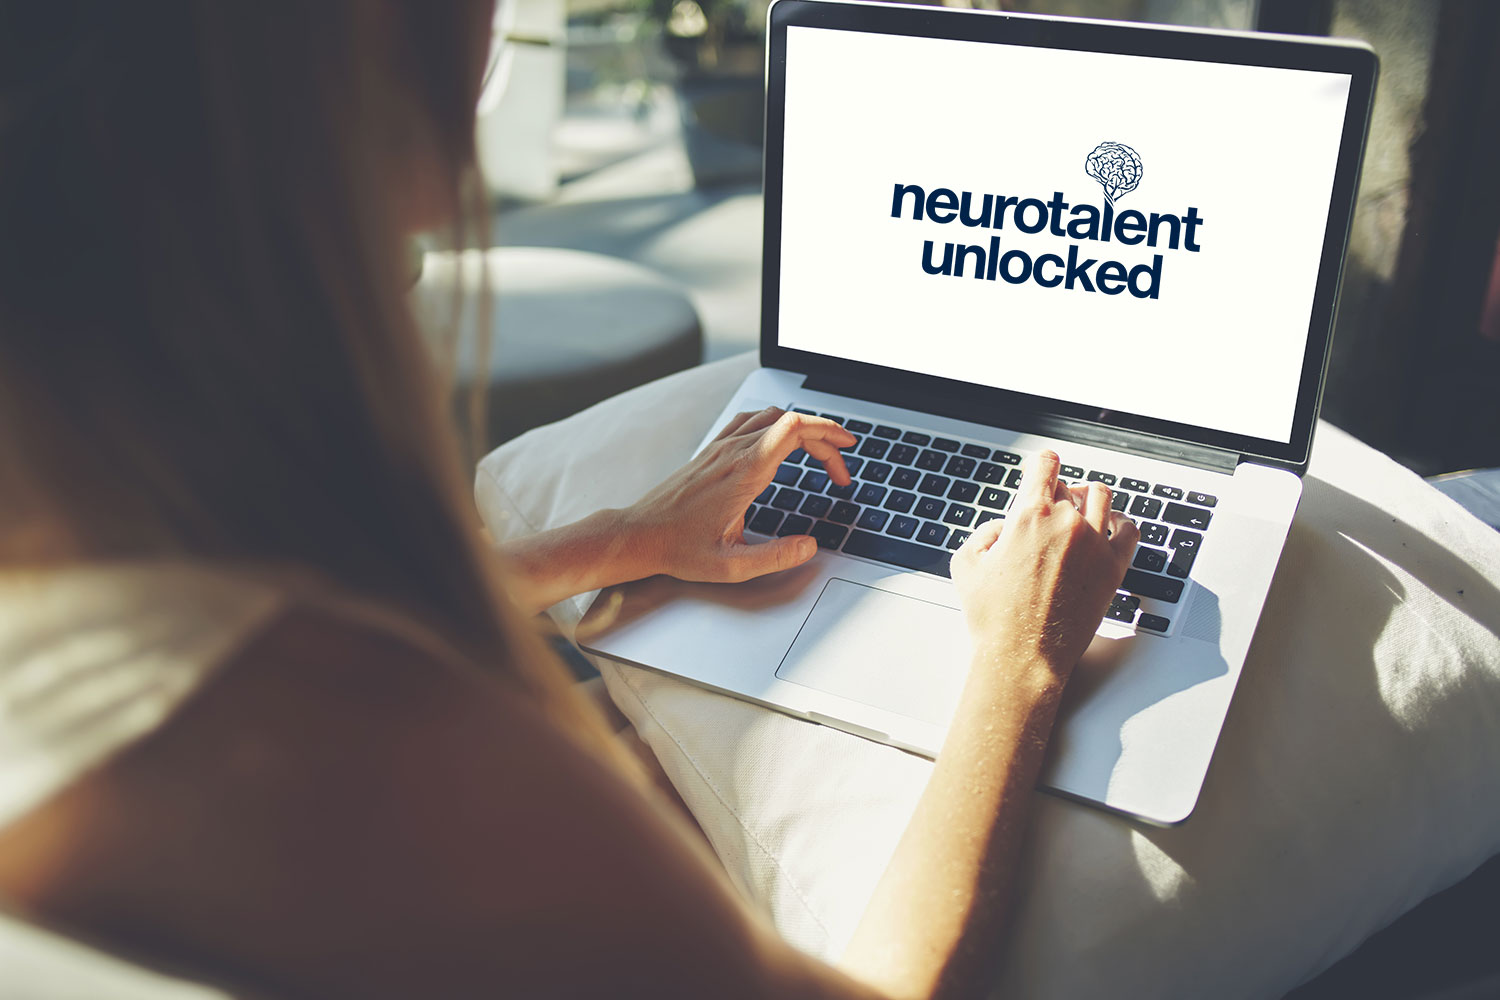 Online Learning - • Neurotalent Unlocked is an online learning platform which provides skills-based modules for employees and awareness raising modules for organisations.• Visit the dedicated Neurotalent Unlocked website to learn more.